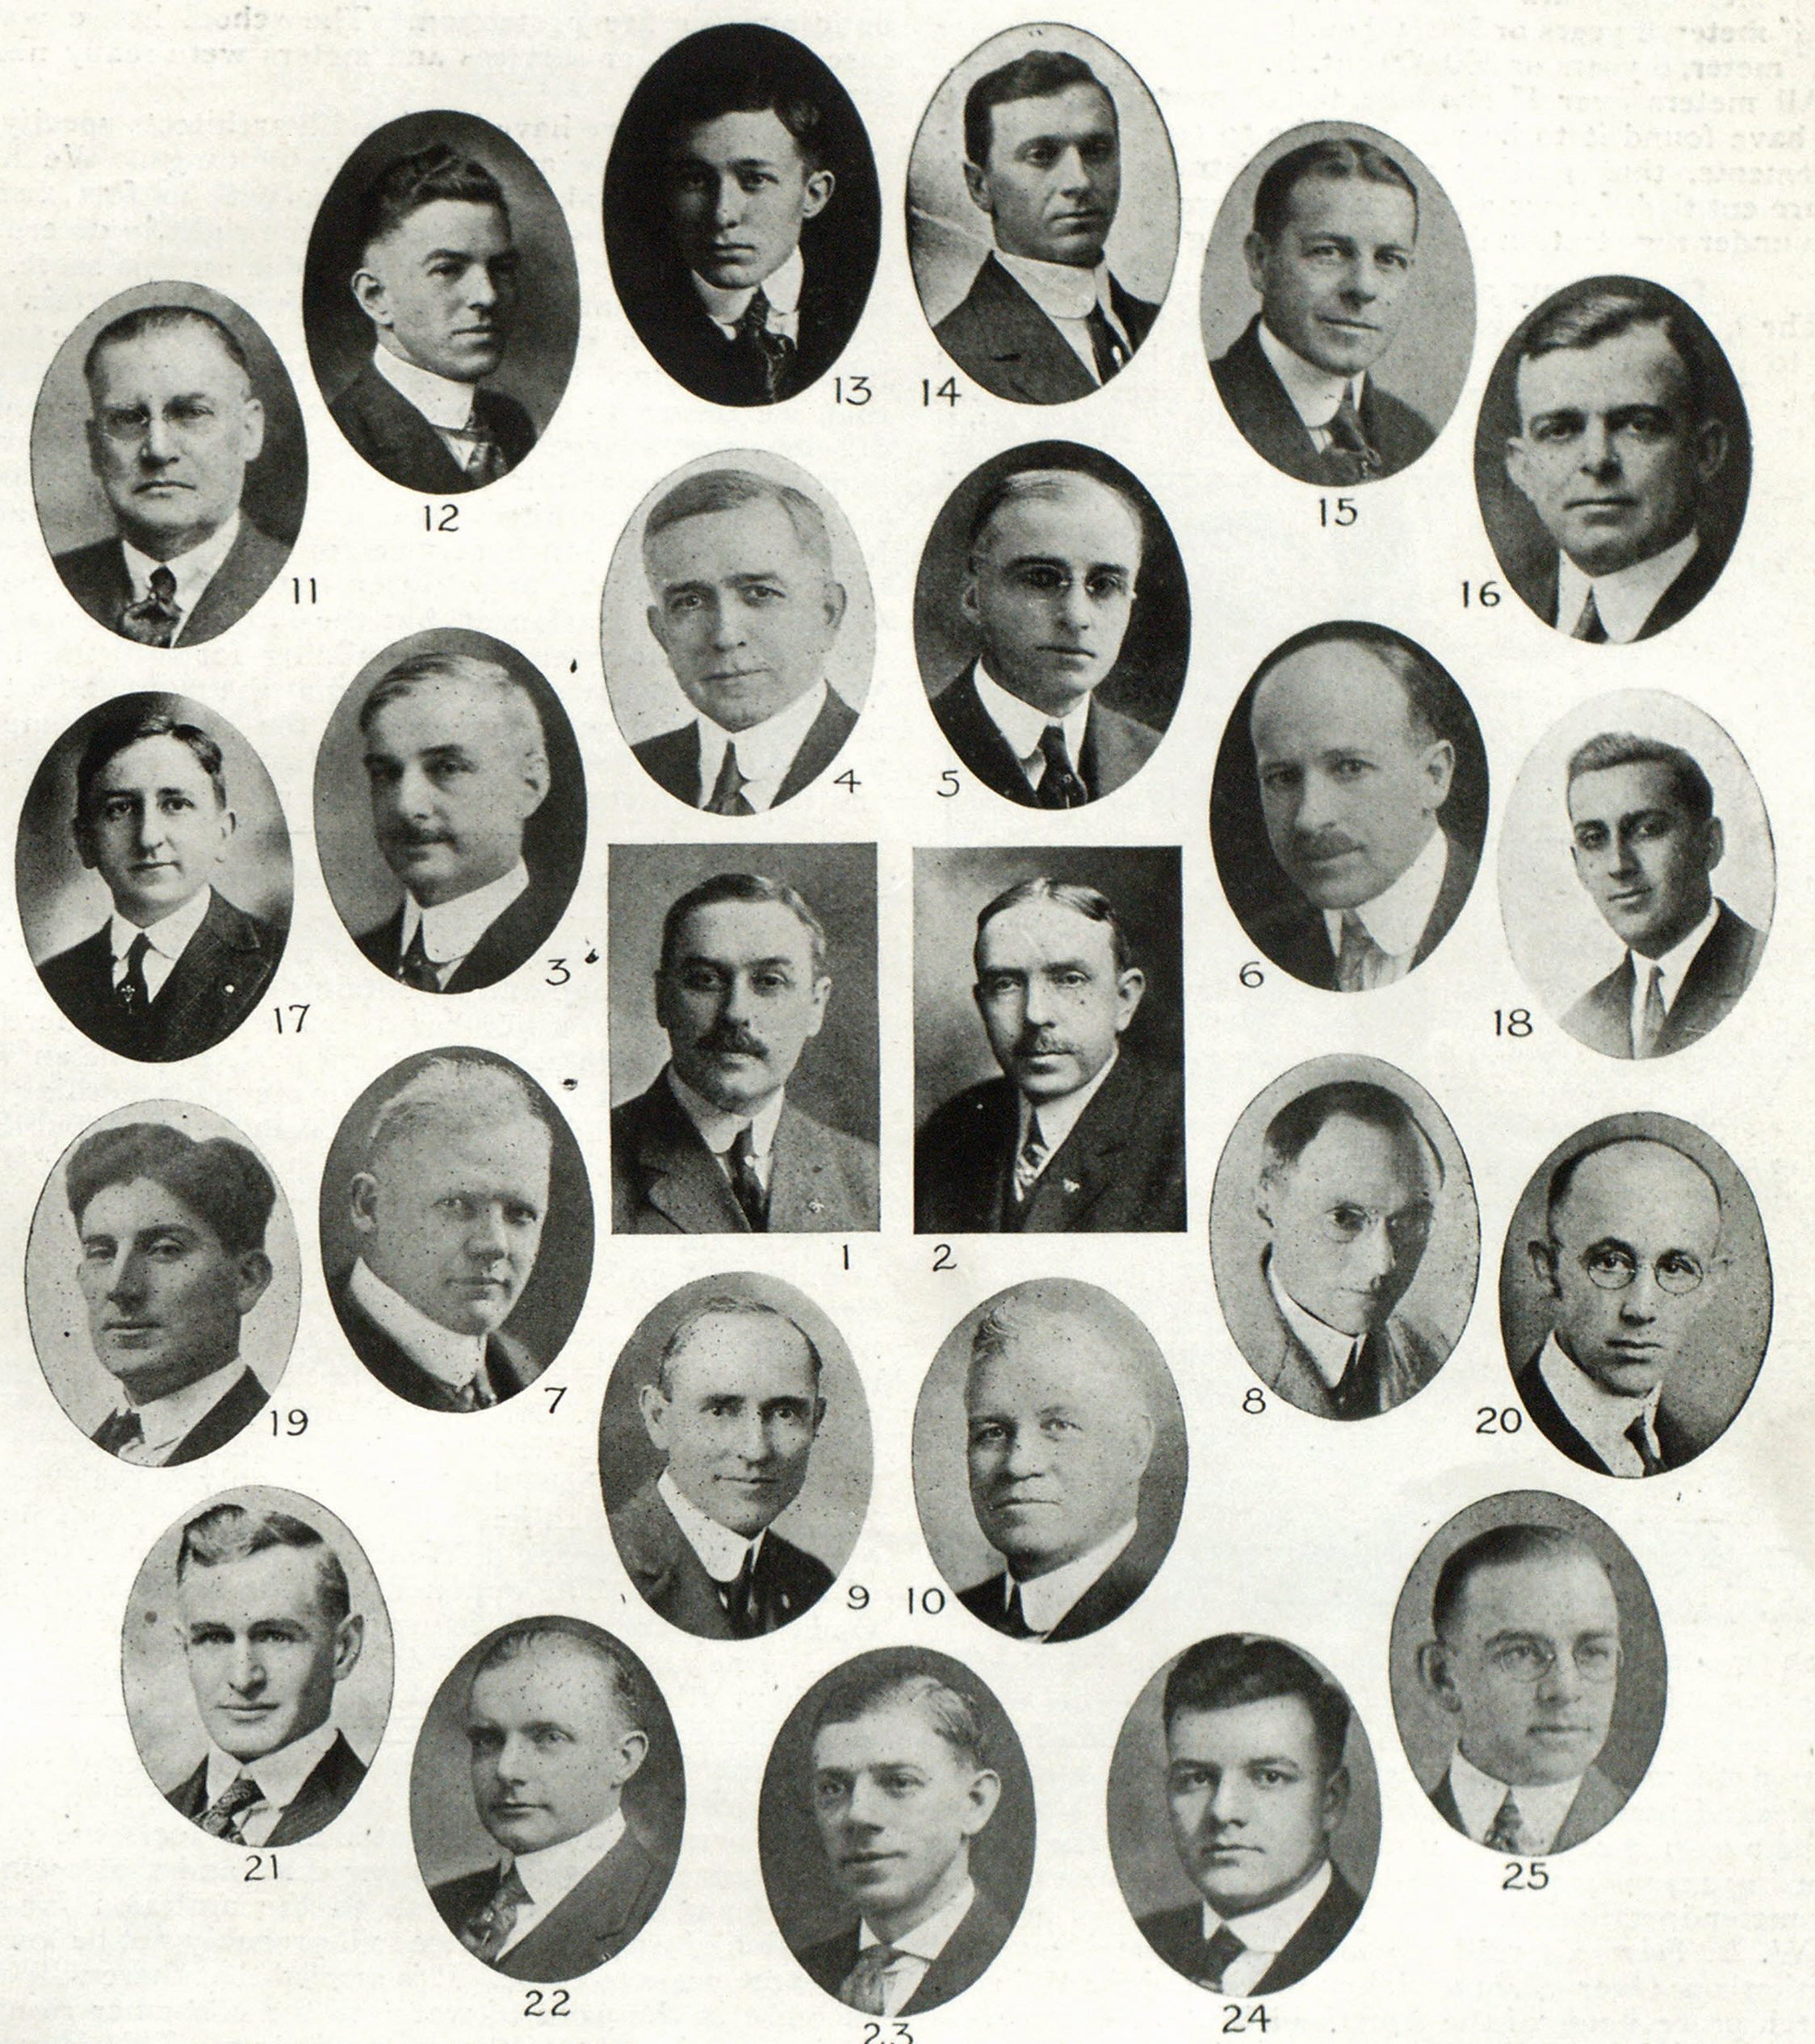 1. A. G. Holmes, Vice-President and Manager. 2. T. C. Clifford, Sales Manager. 3. V'. E. Arnold, District Manager, New York. 4. R. M. Stotler, District Manager, Kansas City. 5. F. G. Swaffield, District Manager, Columbia. 6. II. I. Beardsley, District Manager, Chicago. 7. H. I. Miller, District Manager, Seattle. 8. J. H. Hill, District Manager, Los Angeles. 9. Chas. Barry. 10. J. VV. Turner. 11. J. II. Davis. 12. Z. A. Stanfield. 13. W. H. Davis. 14. J. A. Null: 15. D. C. Kelly. 16. L. L. Ballard. 17. C. R. Zesky. 18. M. J. Harper. 19. F. C. Taylor. 20. G. W. Bailey. 21. G. C. Northrop. 22. D. F. Noonan. 23. F. H. Shores. 24. E. C. Hidlay. 25. A. W. McBride.